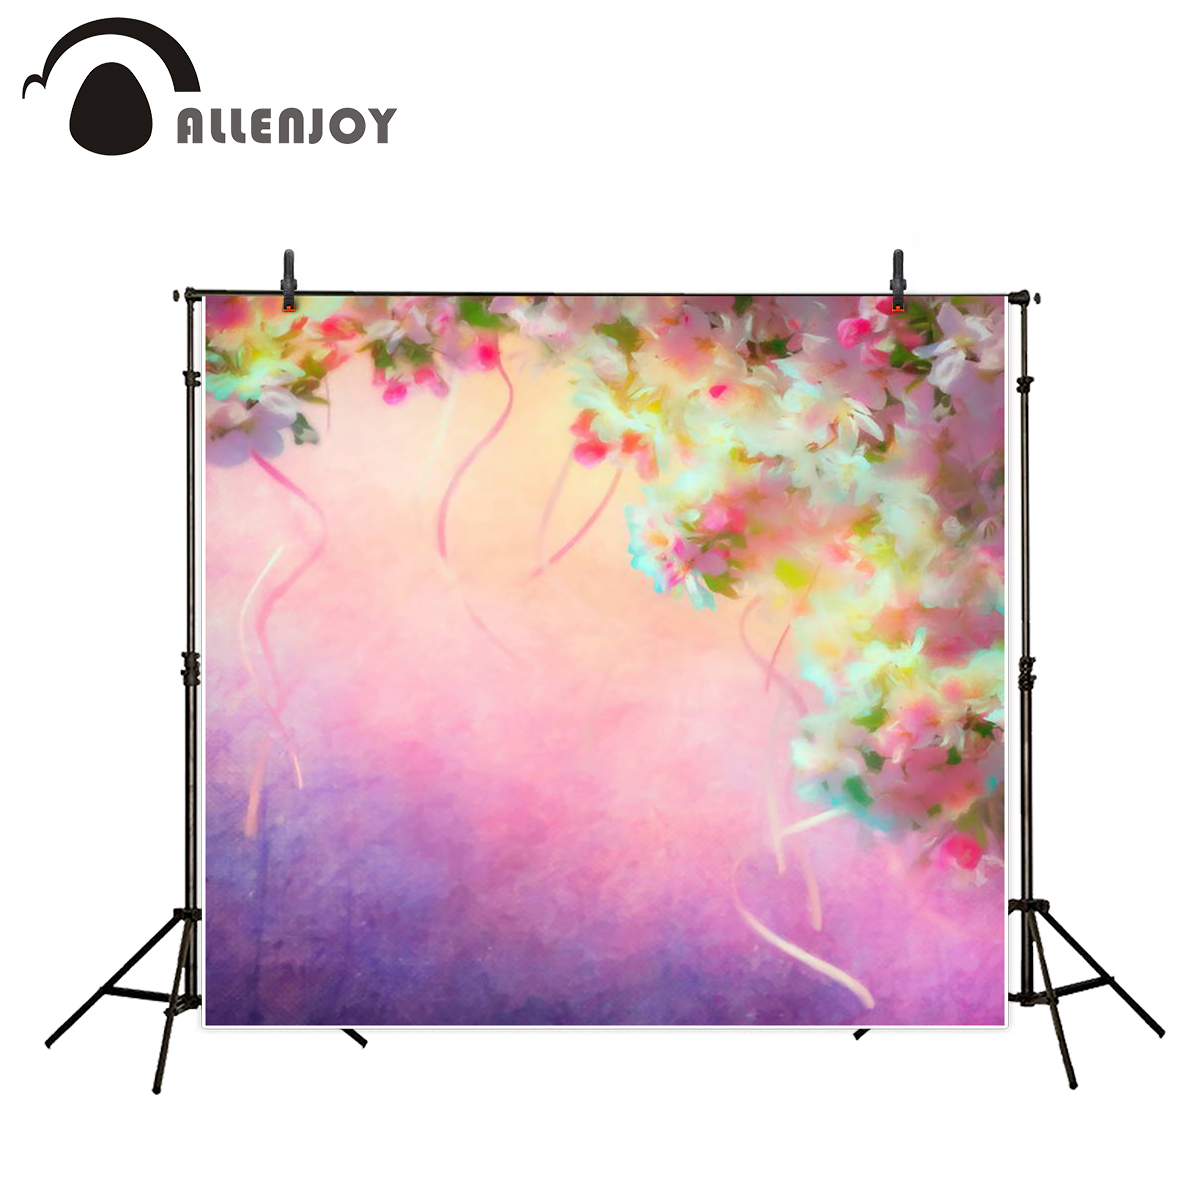 Allenjoy backgrounds for photo studio flower purple baby shower abstract photography backdrop photobooth vinyl cloth fabric цена